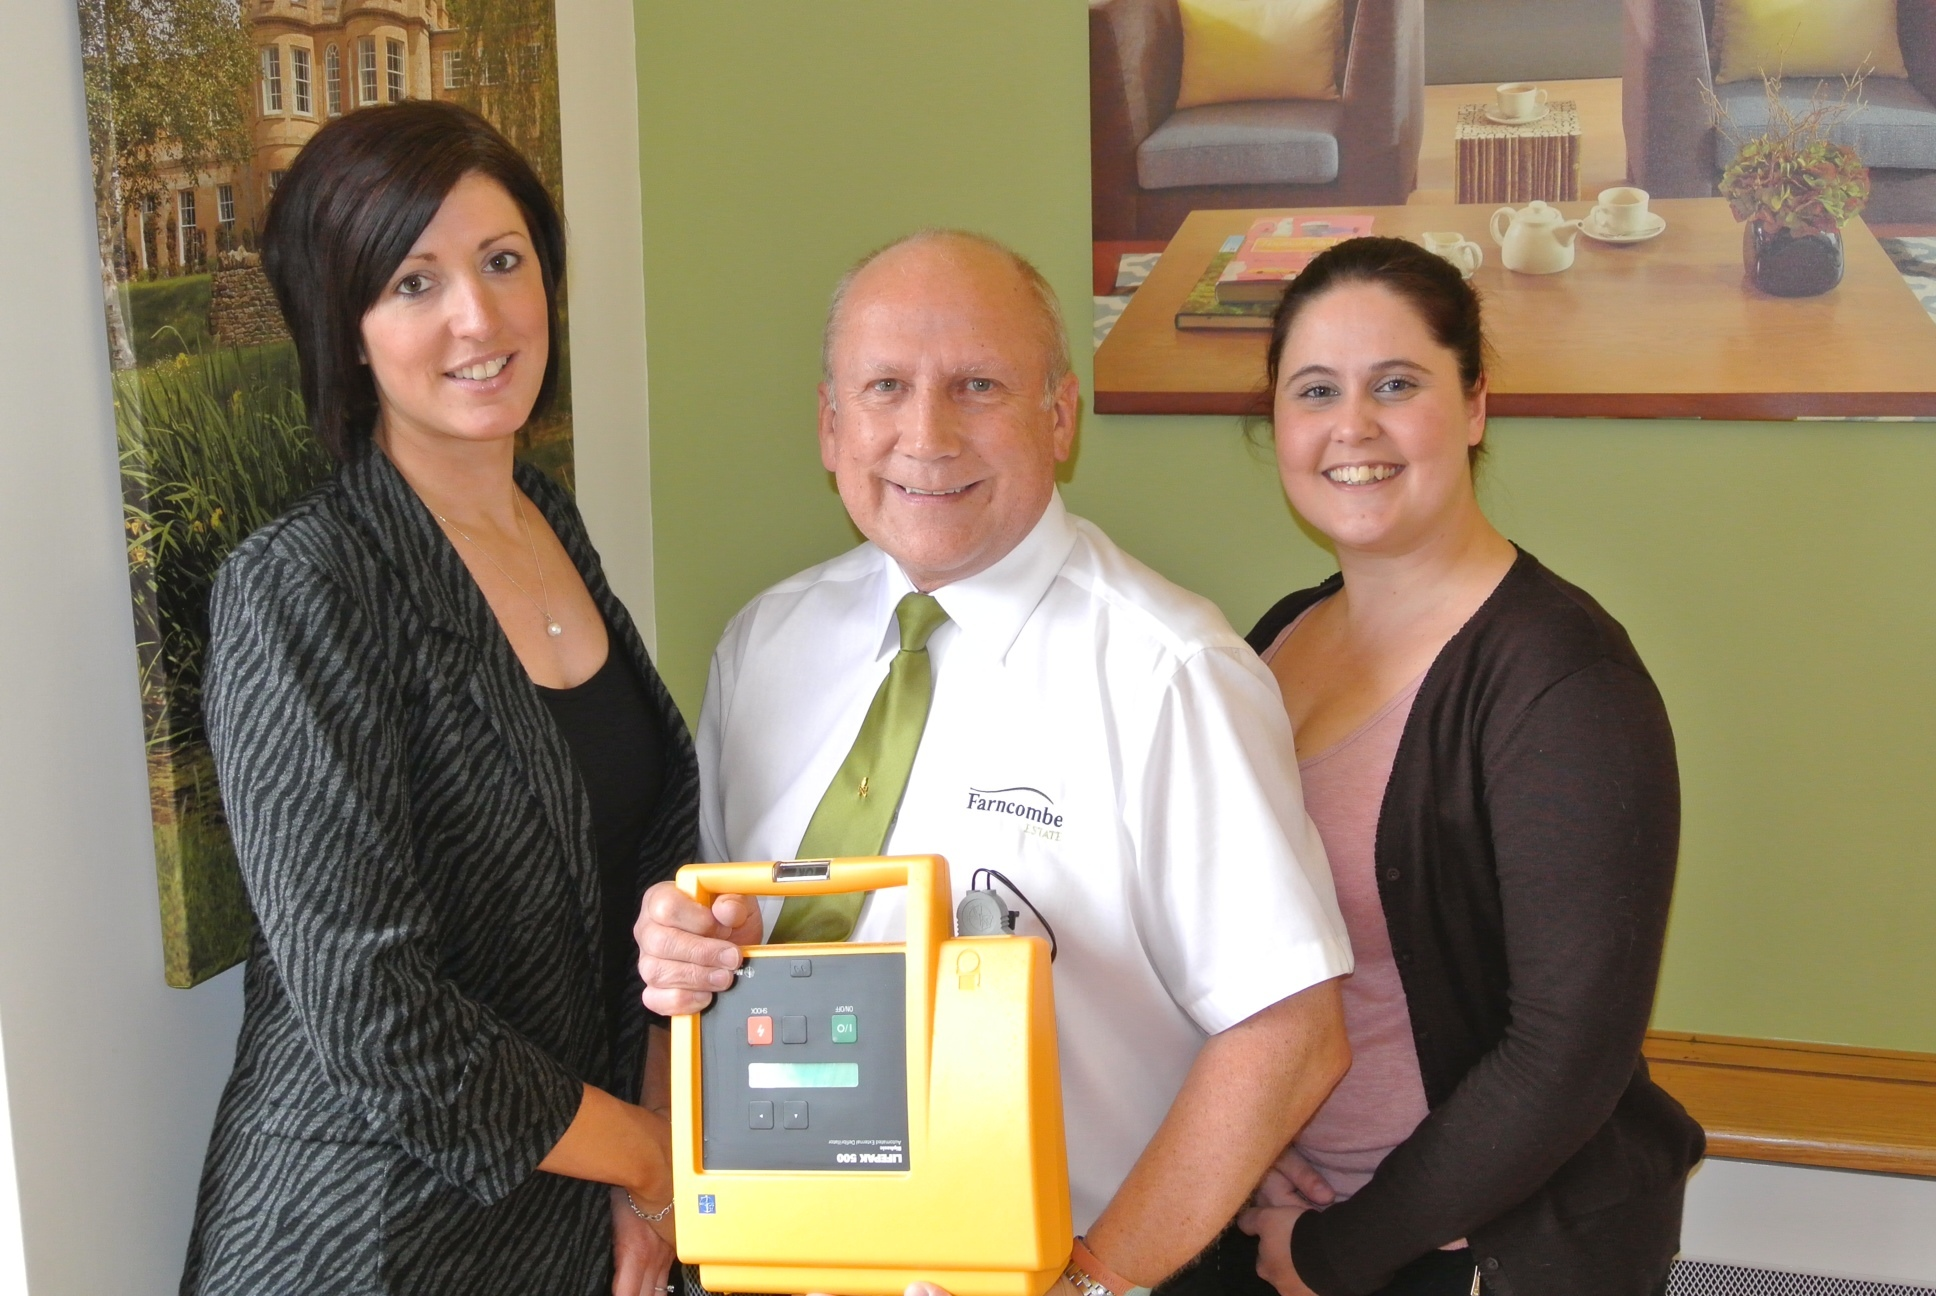 HEROES: Lifesavers Katie Nightingale, Tony Haines and Gemma Guedes with the defibrillator they dashed to fetch.